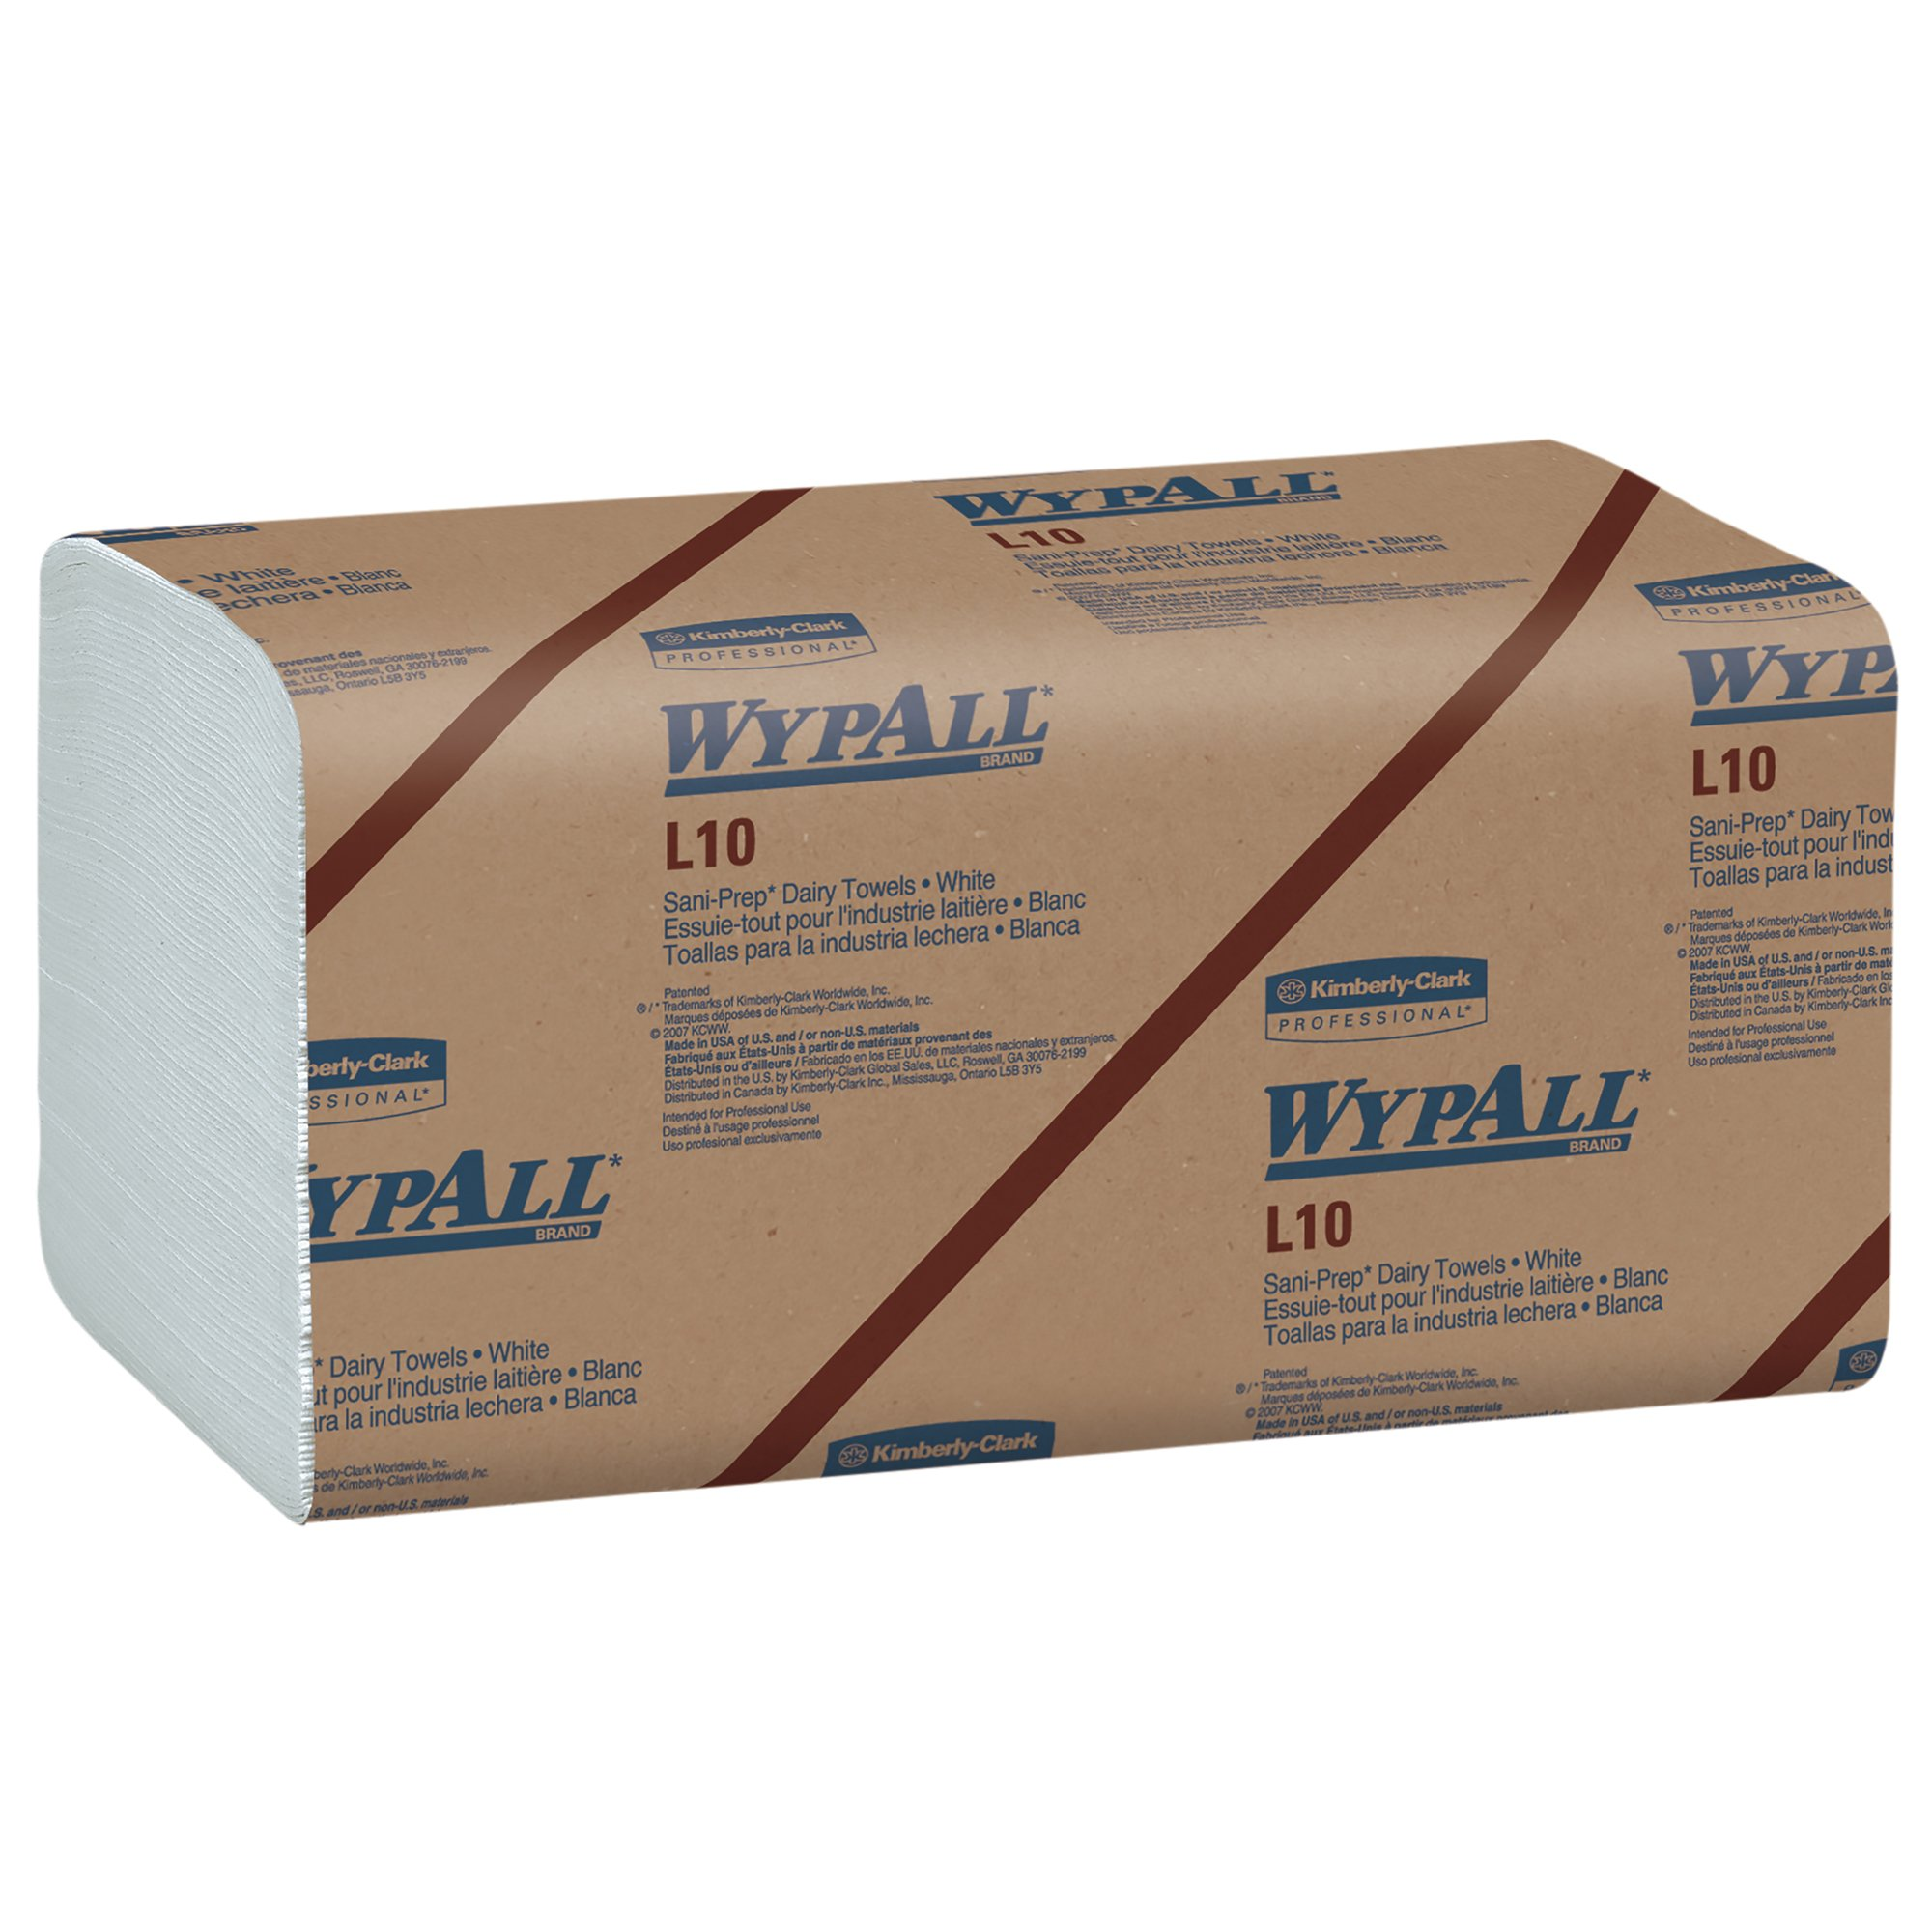 Wypall L10 Disposable Towels (01770), Dairy Towels, 1-PLY, Banded, White, 12 Packs/Case, 200 Wipes/Pack, 2,400 Sheets/Case